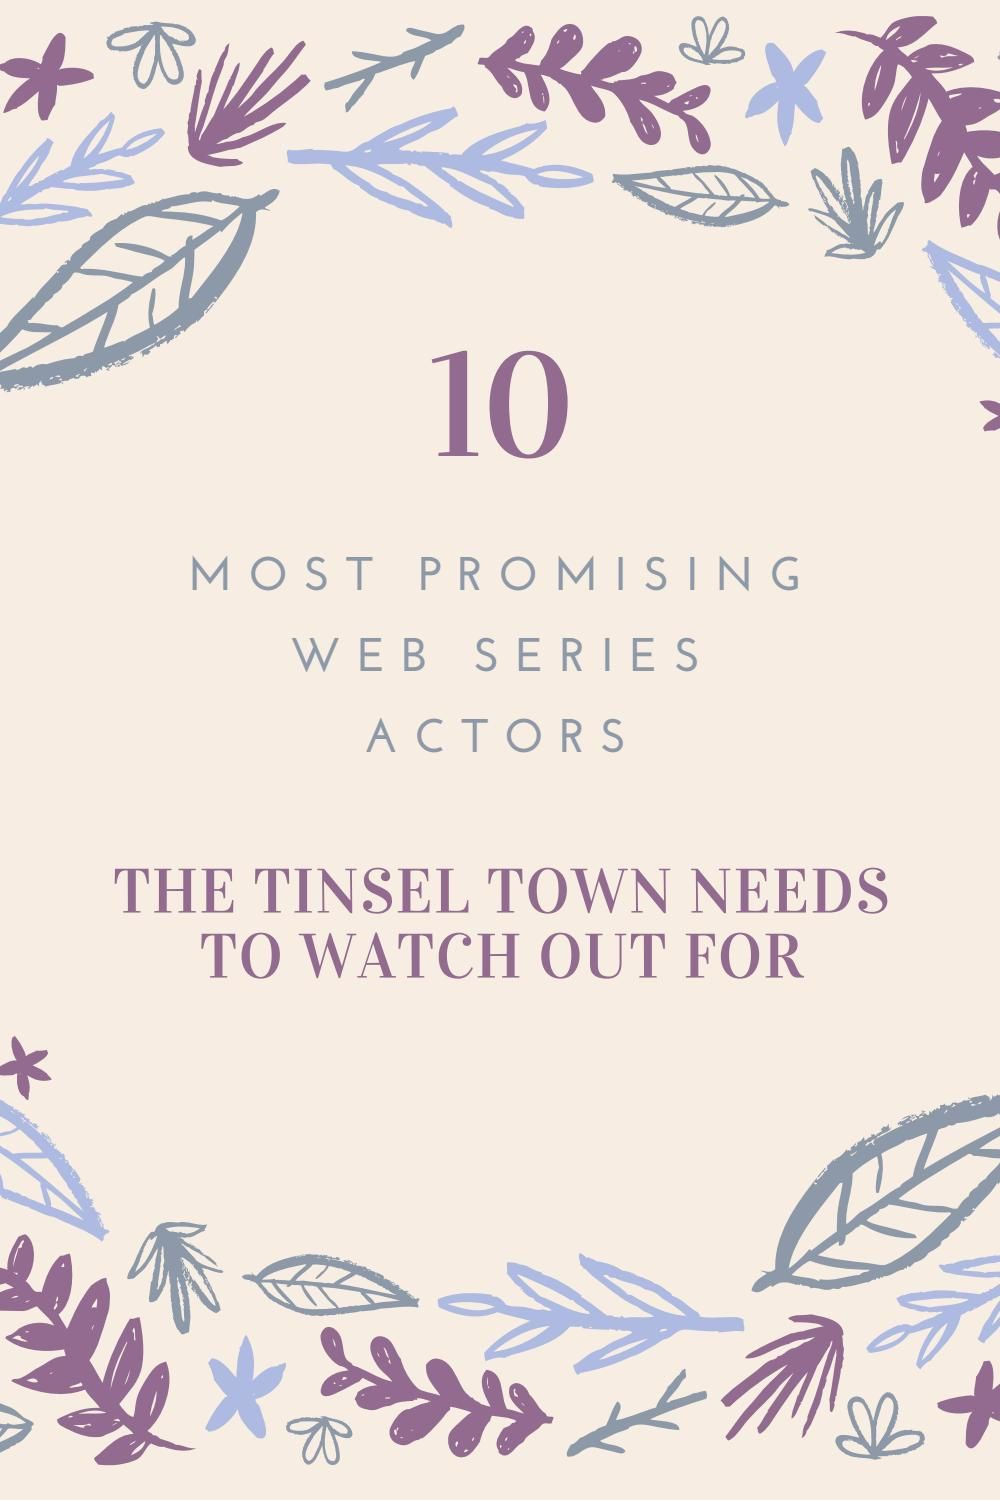 10 most promising web series actors the tinsel town needs to